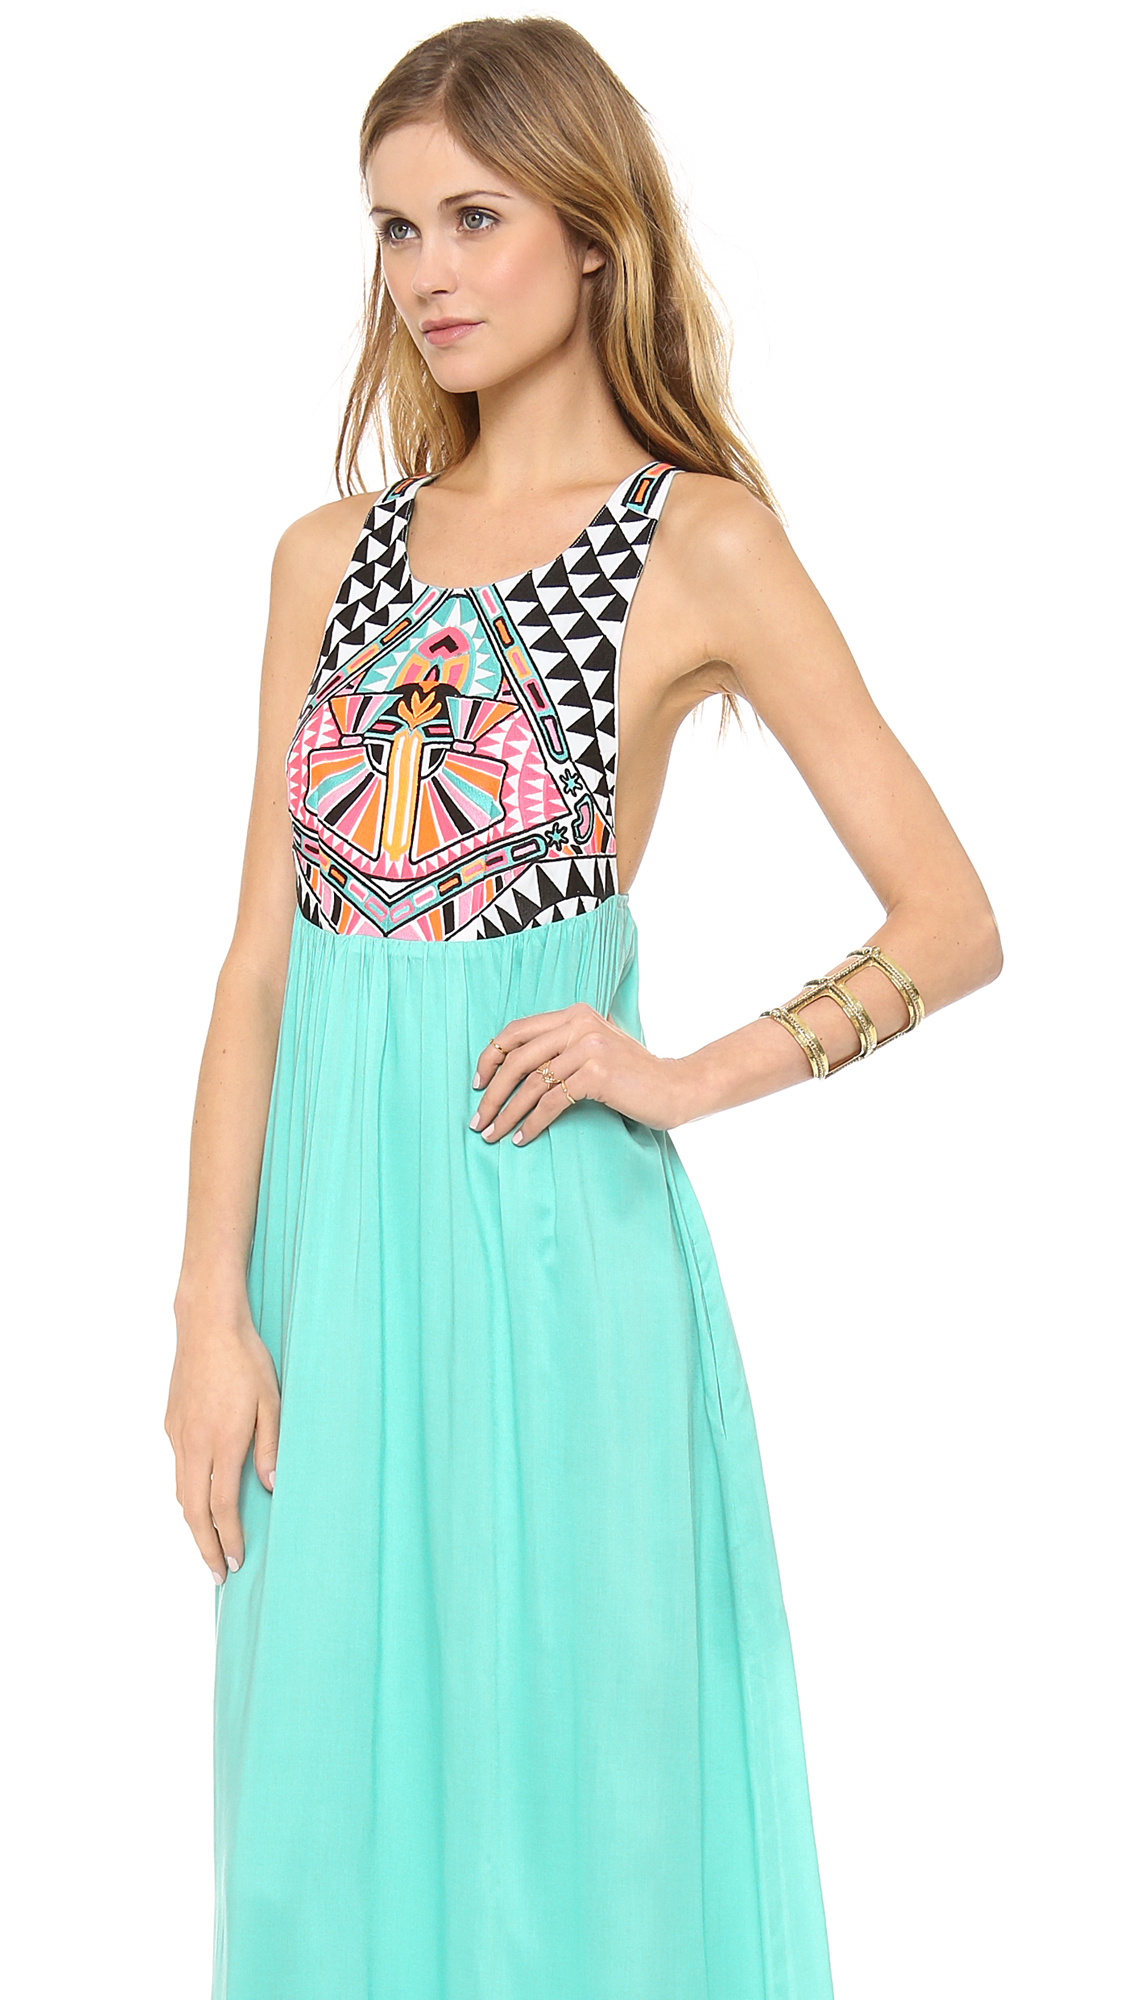 80ecfef43117 Lyst - Mara Hoffman Cosmic Fountain Embroidered Maxi Dress Turquoise ...